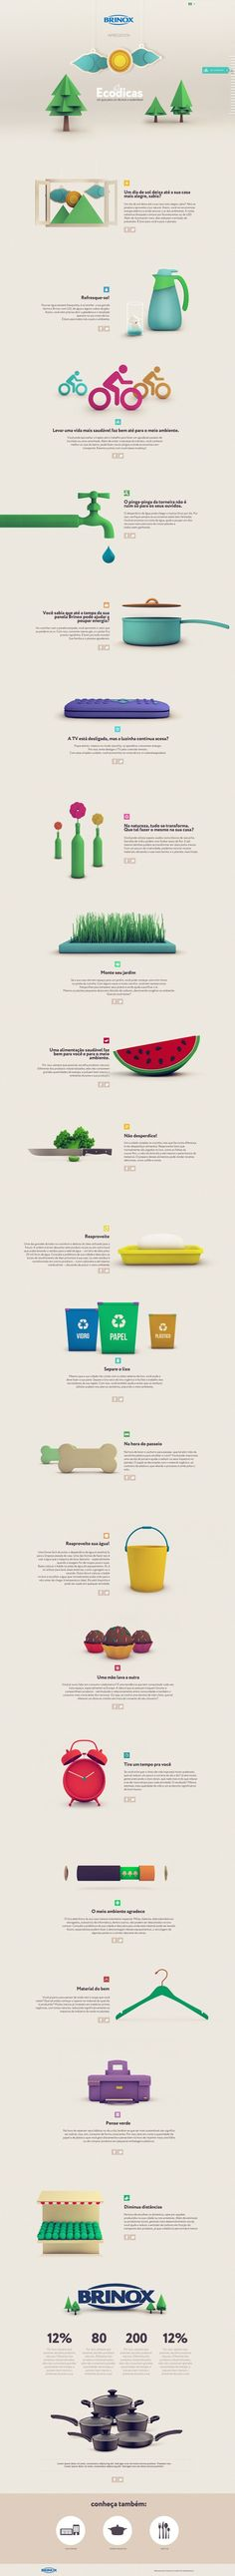 Eco Dicas - Brinox by Isabela Rodrigues, via Behance *** Ecodicas is a campaign of Brinox, housewares brand of southern Brazil. It is targeted for recycling, reuse and giving tips to conserve the environment.    It is a pleasure to work with the DM9Sul for a cause so important nowadays.    We all animated illustrations to be working on html5.